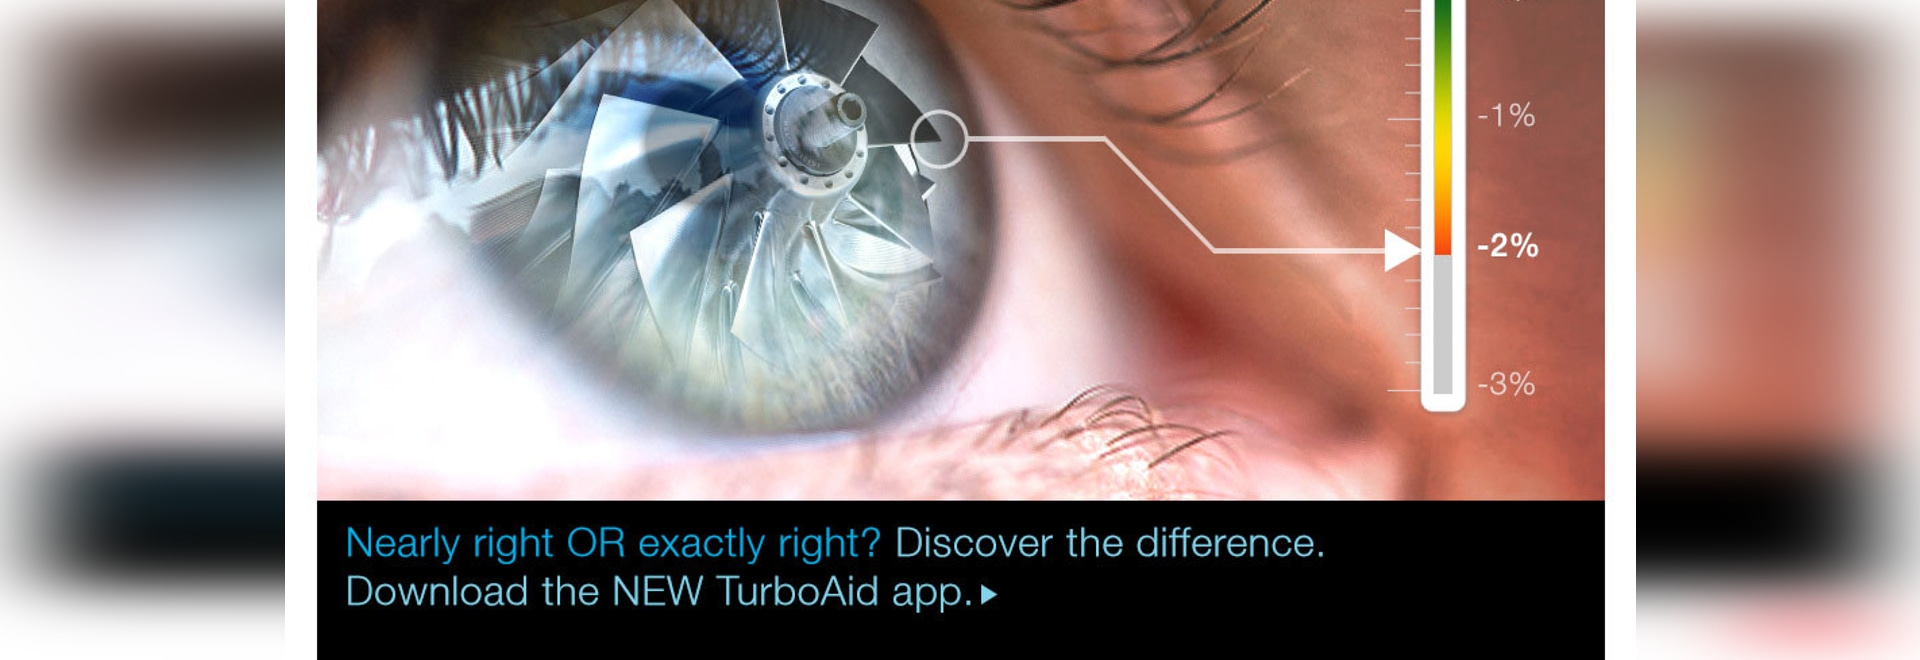 Discover TurboAid - the new turbocharger app from ABB